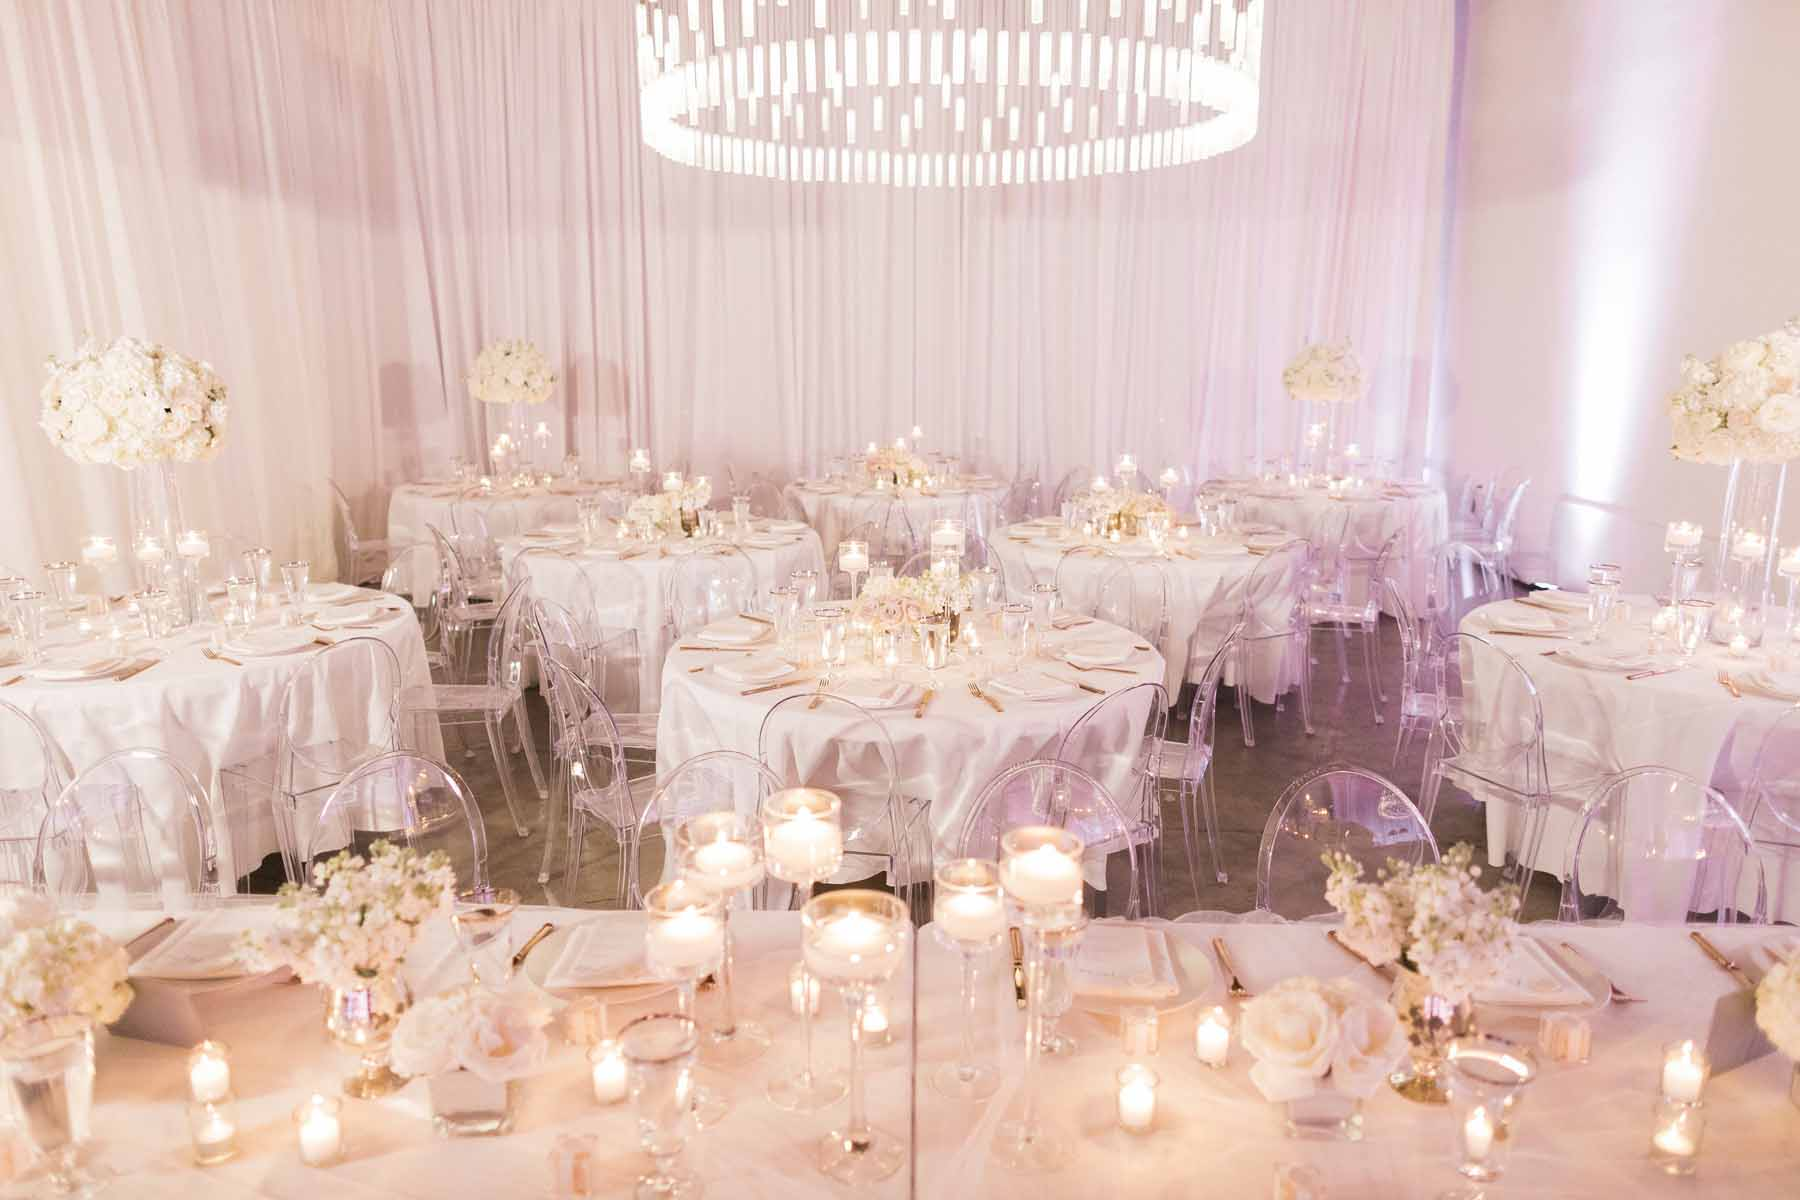 All white wedding reception at Canvas Event Space Seattle with white draping, white table linens, floating candles, white flower centerpieces